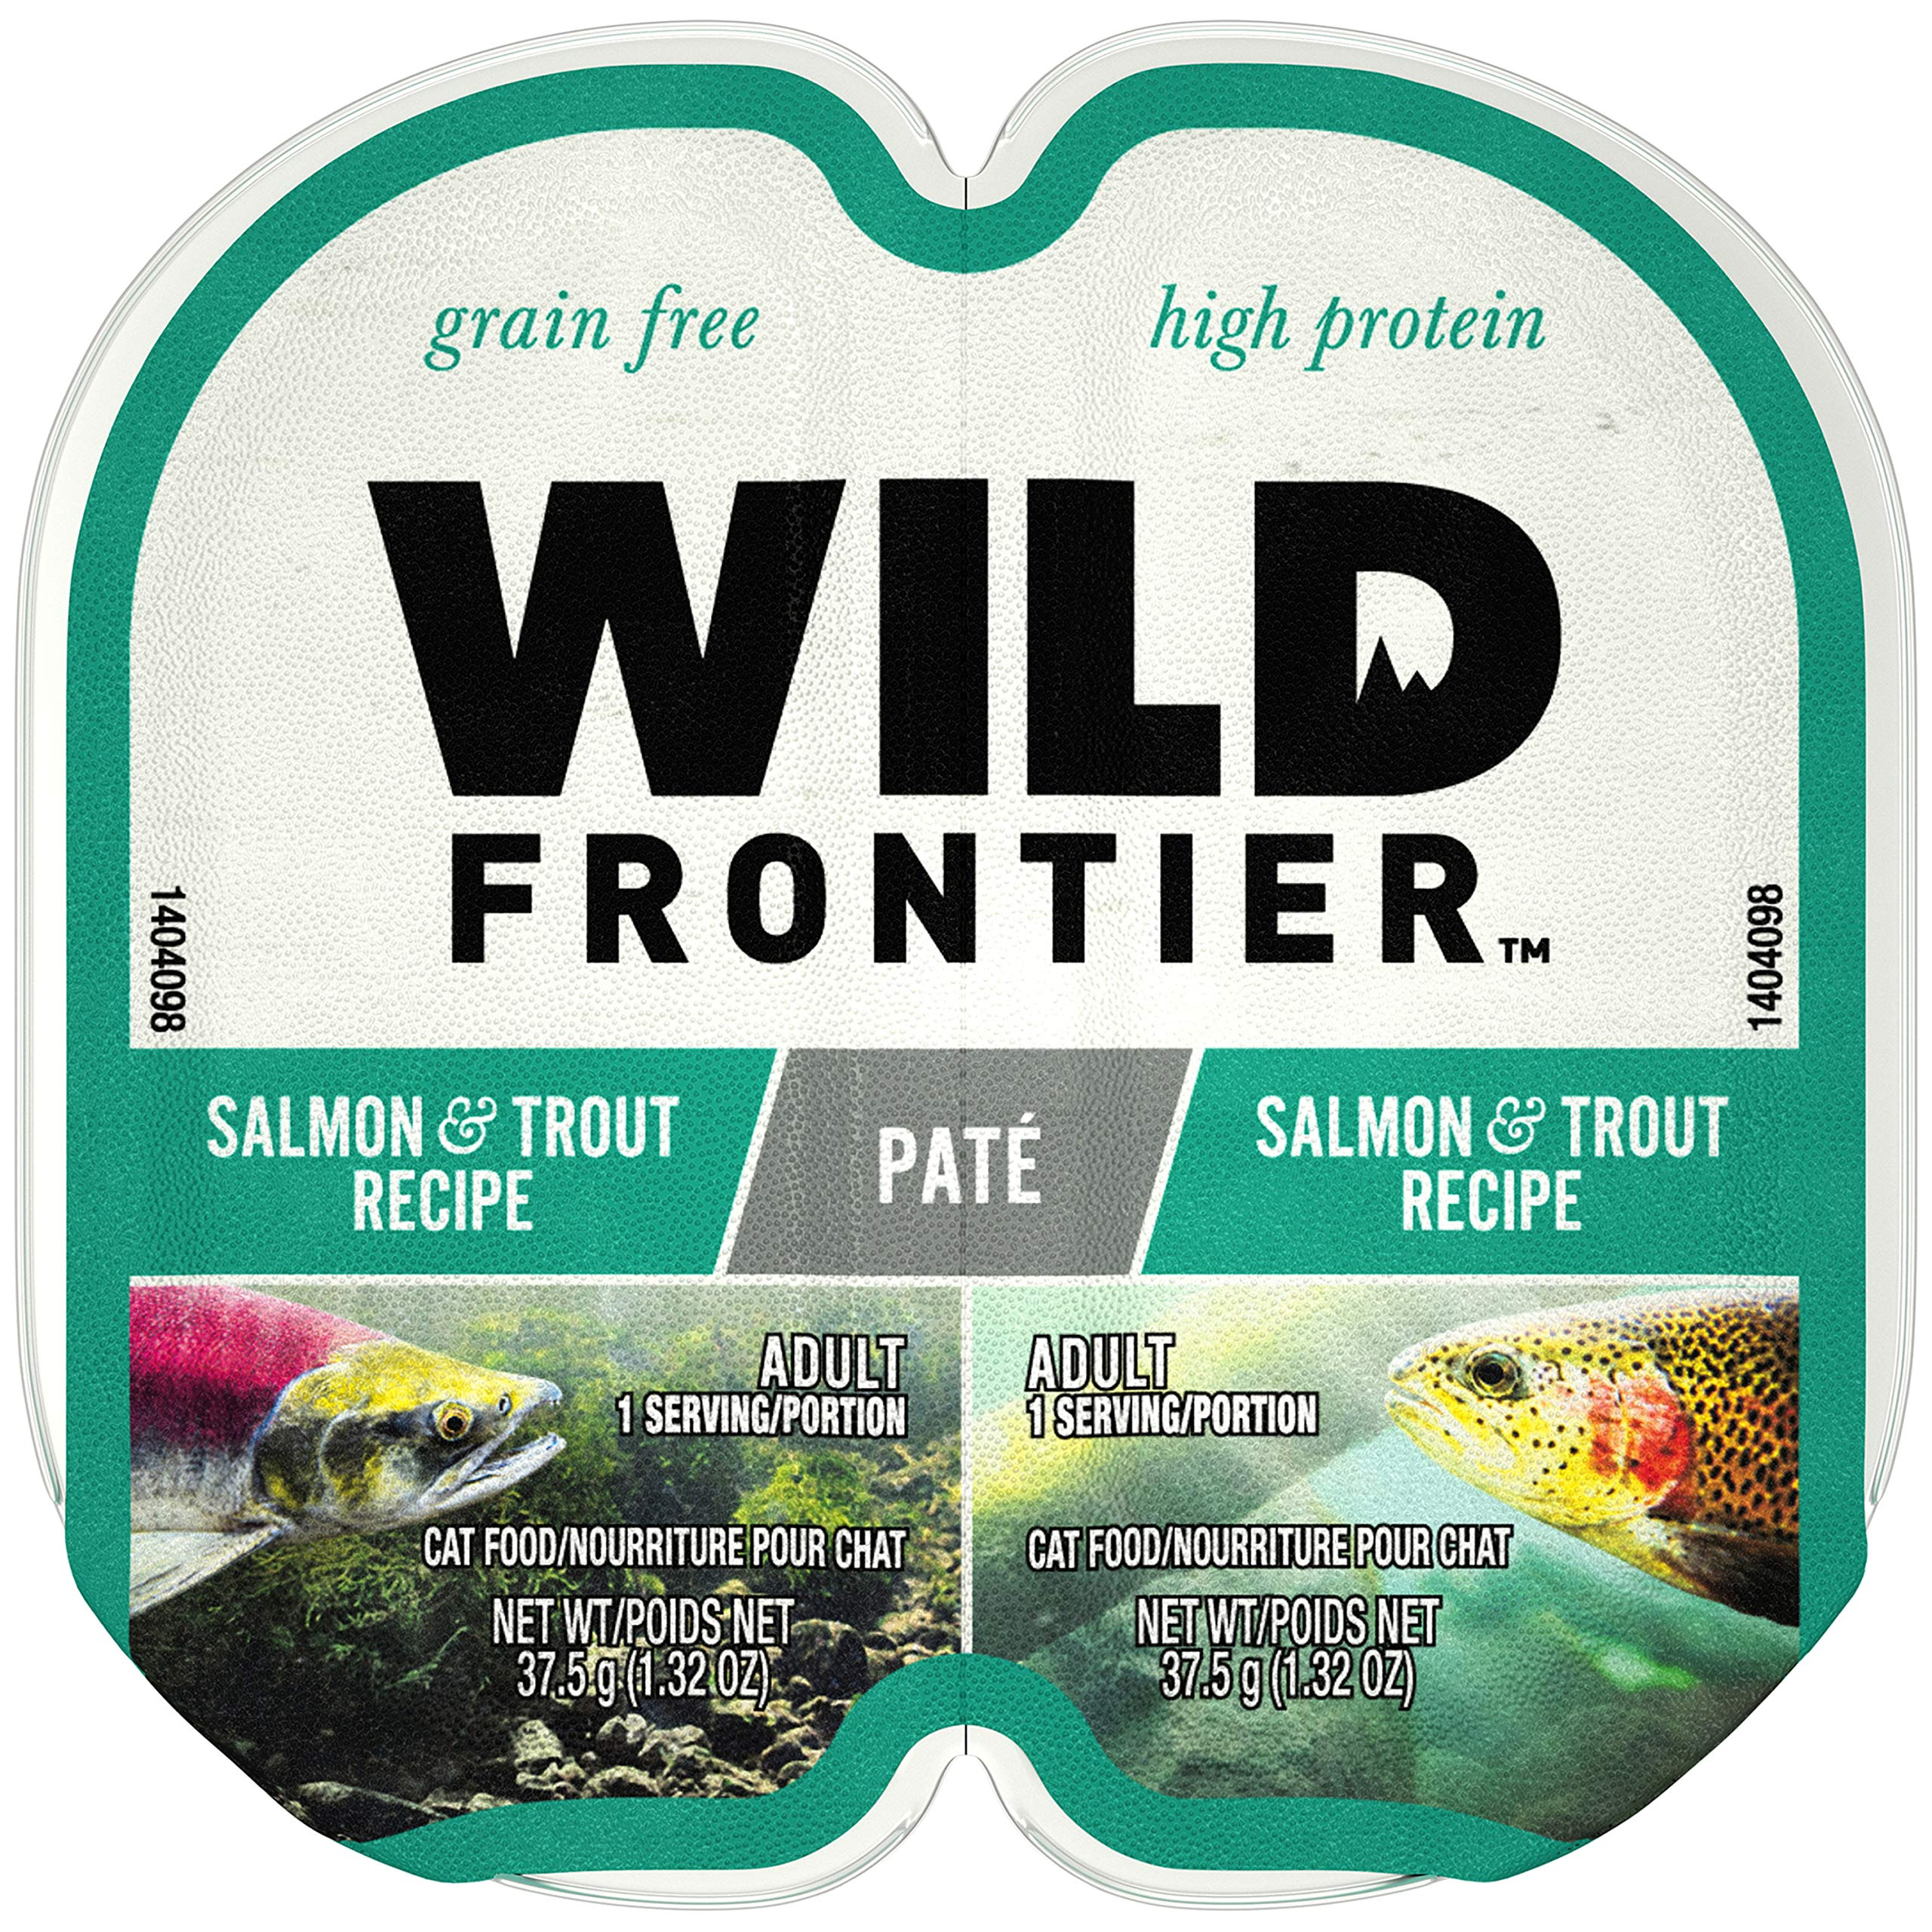 Nutro Wild Frontier High Protein Grain Free Pate Wet Cat Food, Salmon & Trout, 2.65 Oz. (24 Twin Packs) by Wild Frontier Wet Cat